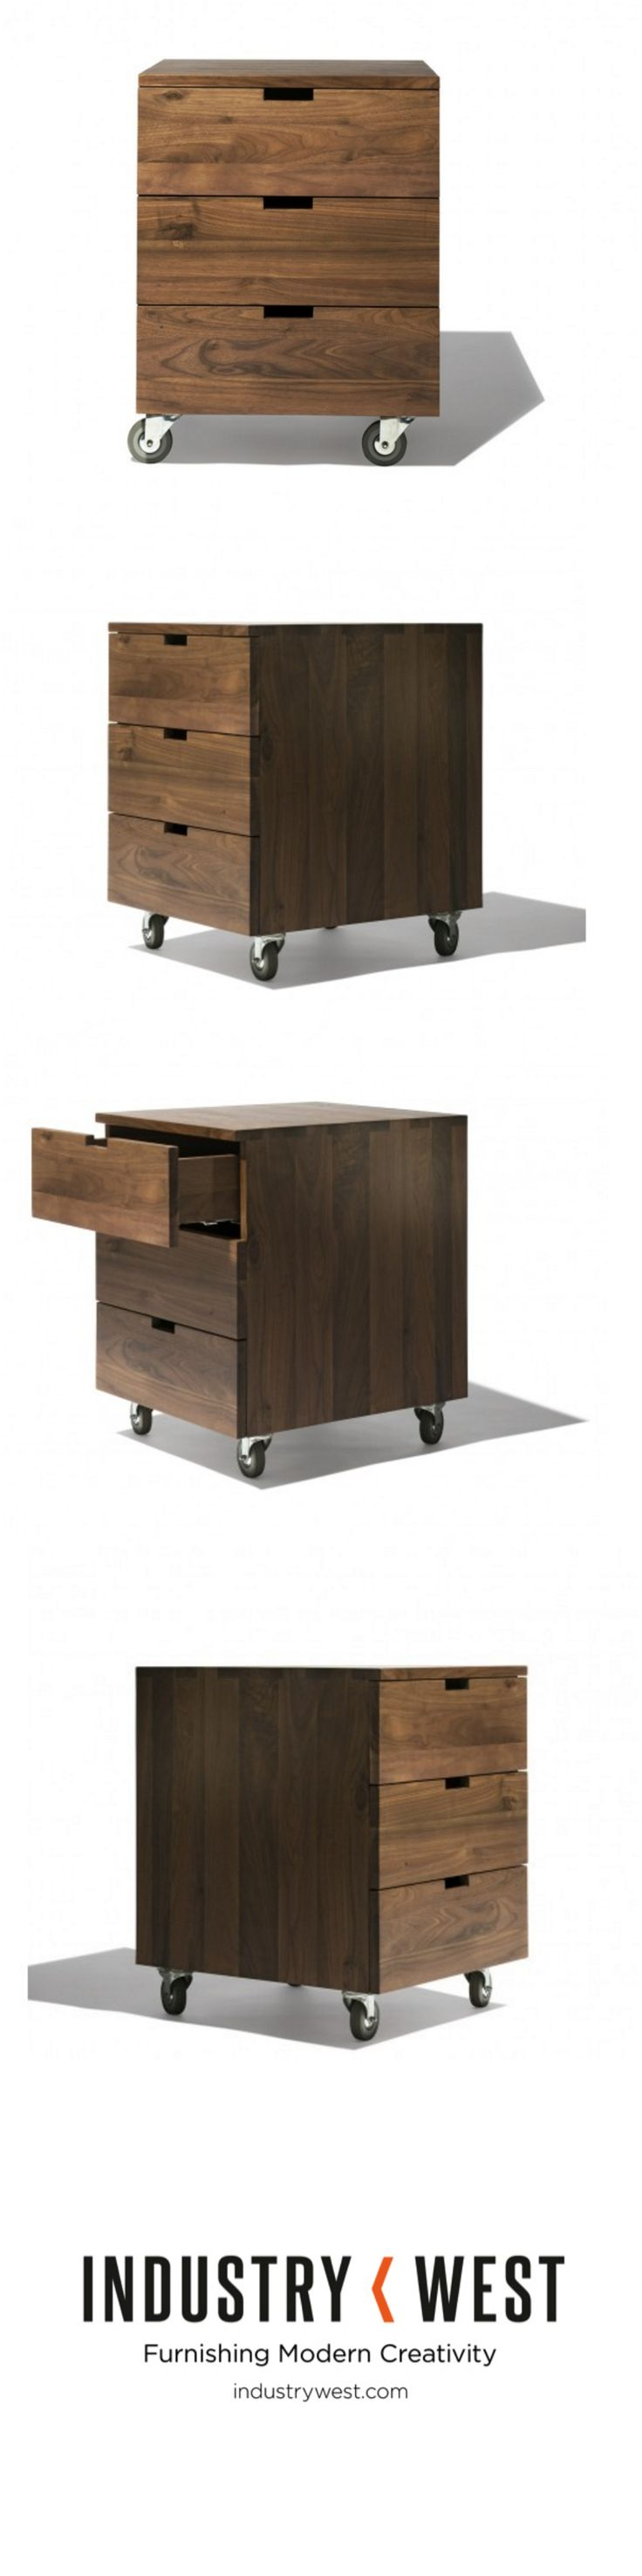 The Billy Box epitomizes simplicity, clean lines, and beautiful solid oak walnut wood. Meant to be the perfect addition to your office, work space or storage needs the Billy Box features rotating wheels for mobility. Three drawers feature hand crafted sleek glides for seamless movement.